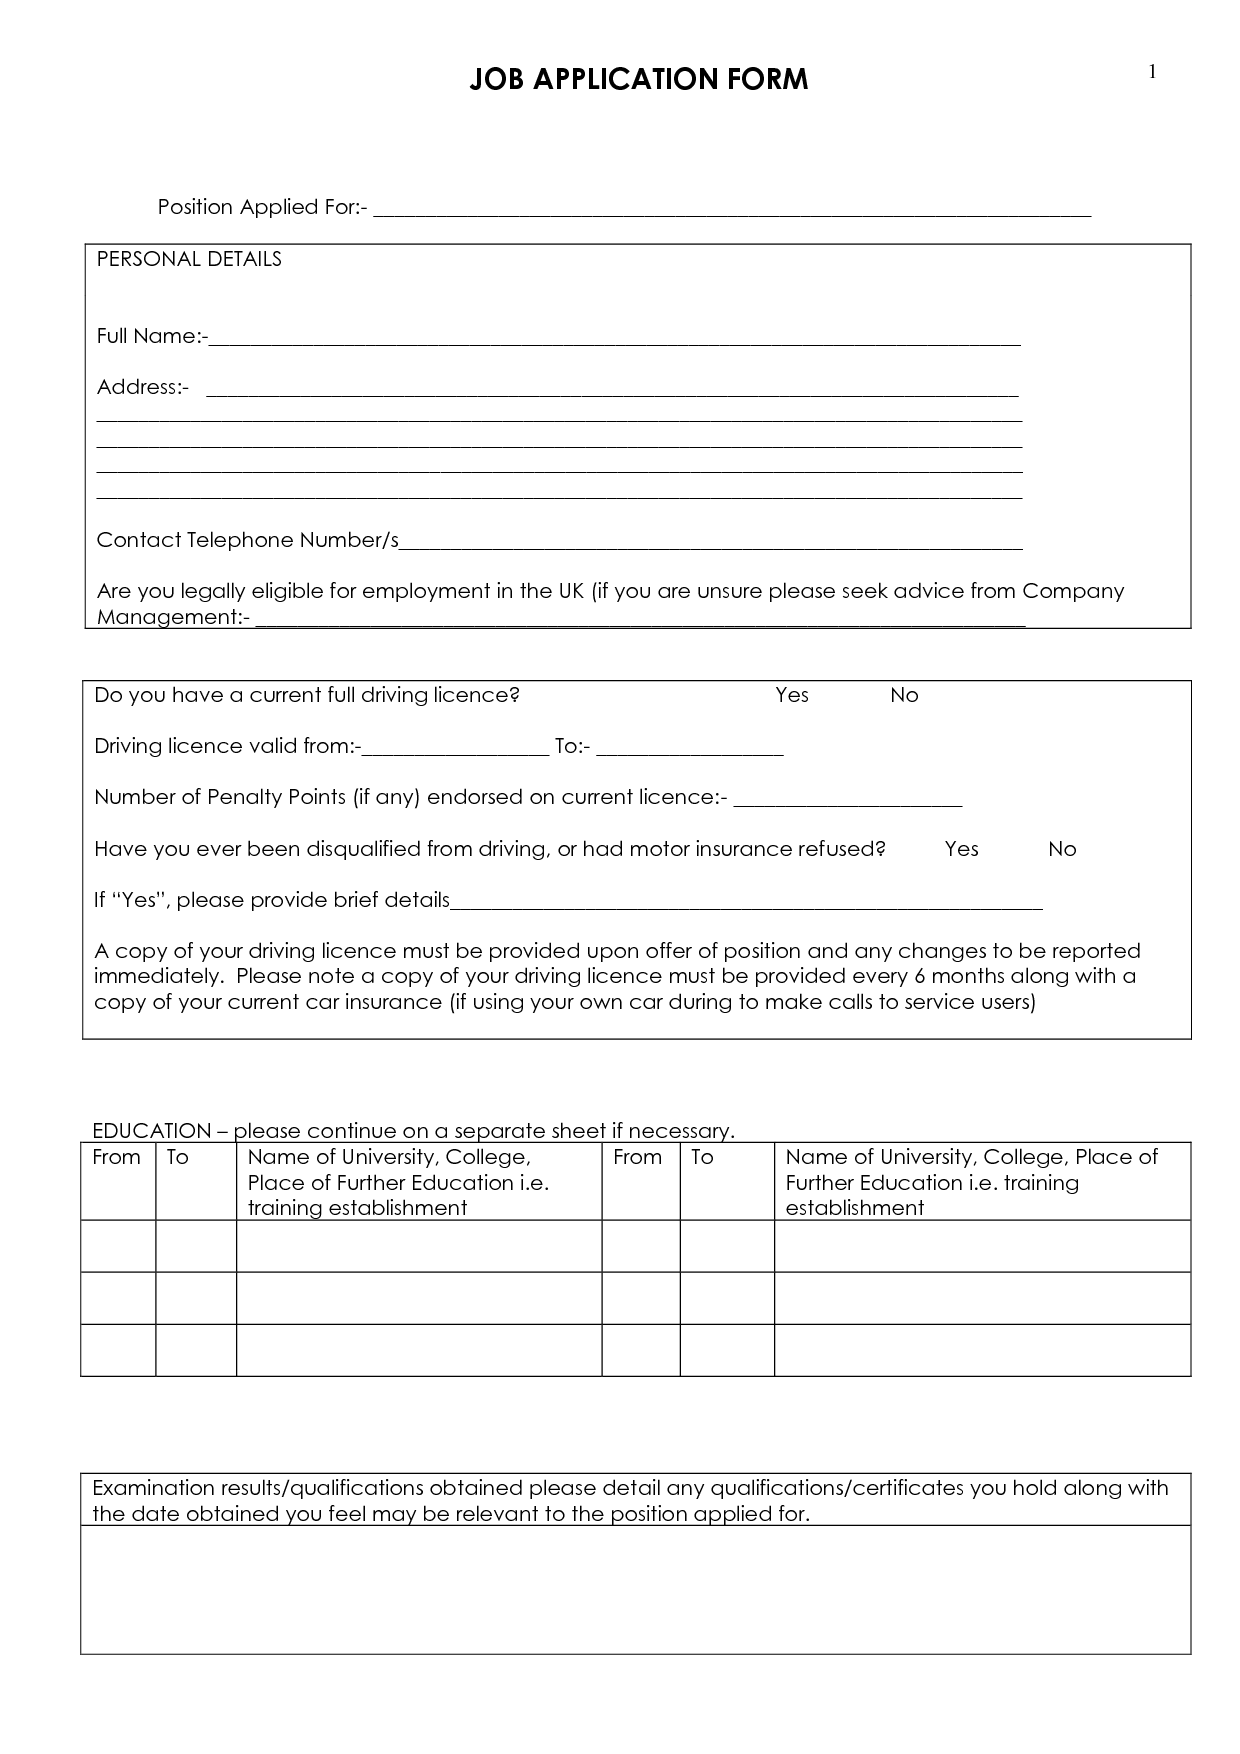 job application form to print blank job application forms job application form to print blank job application forms